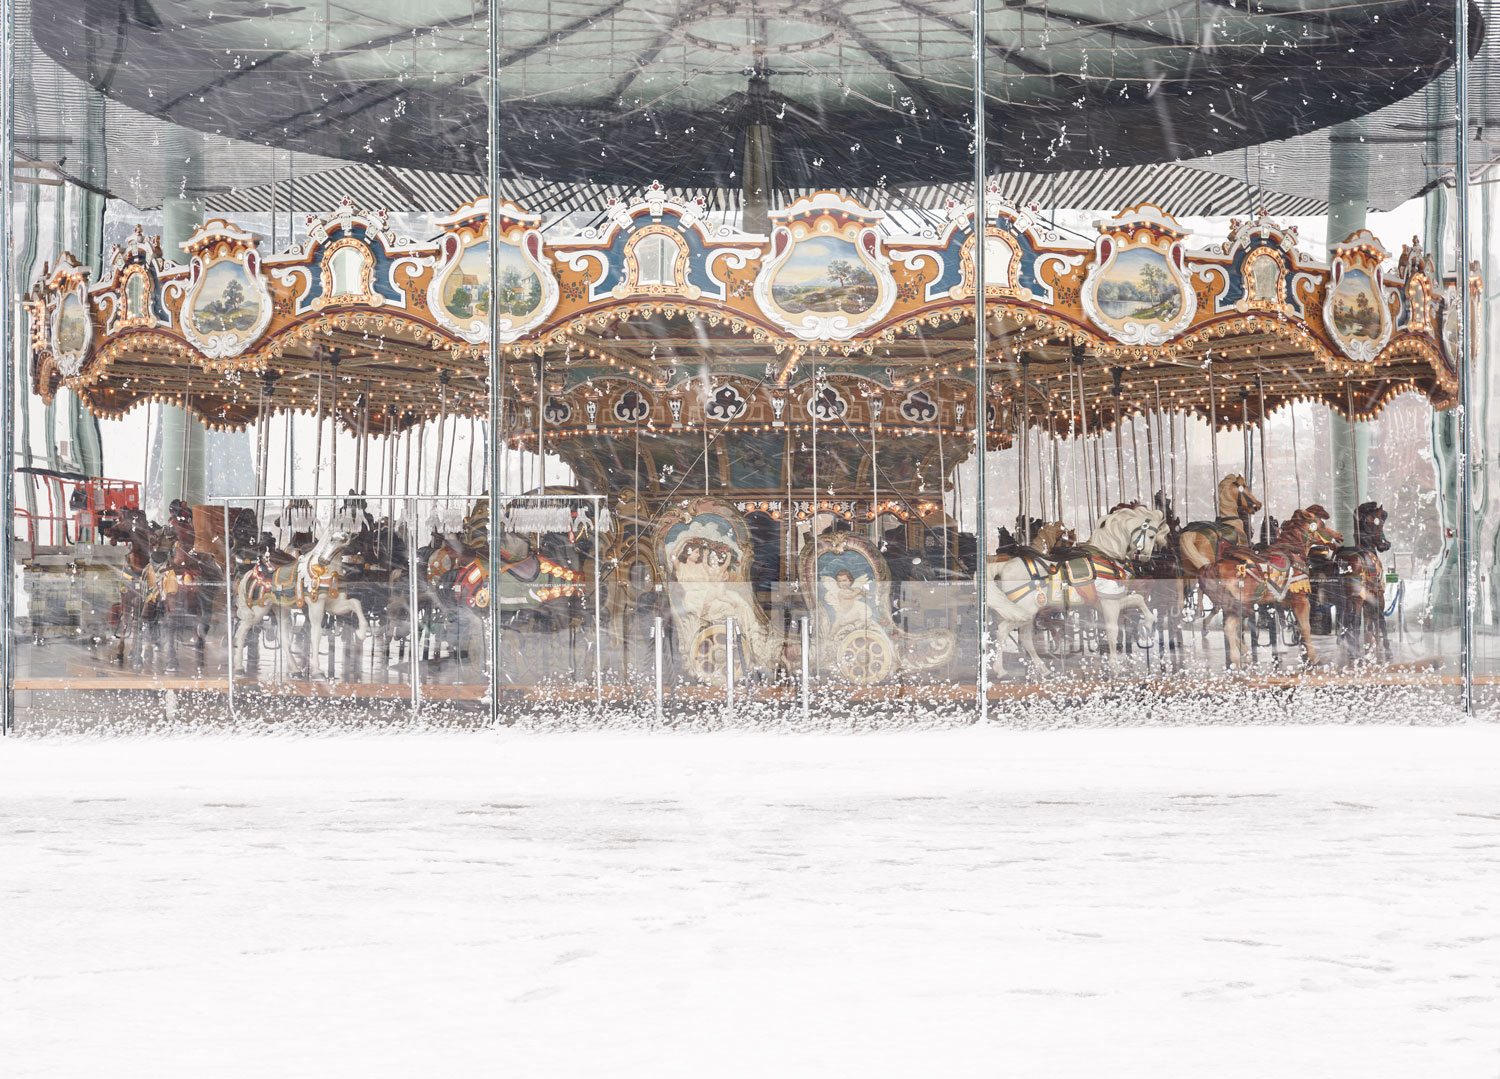 'Blizzard and Jane's Carousel' © 2017 harlan erskine